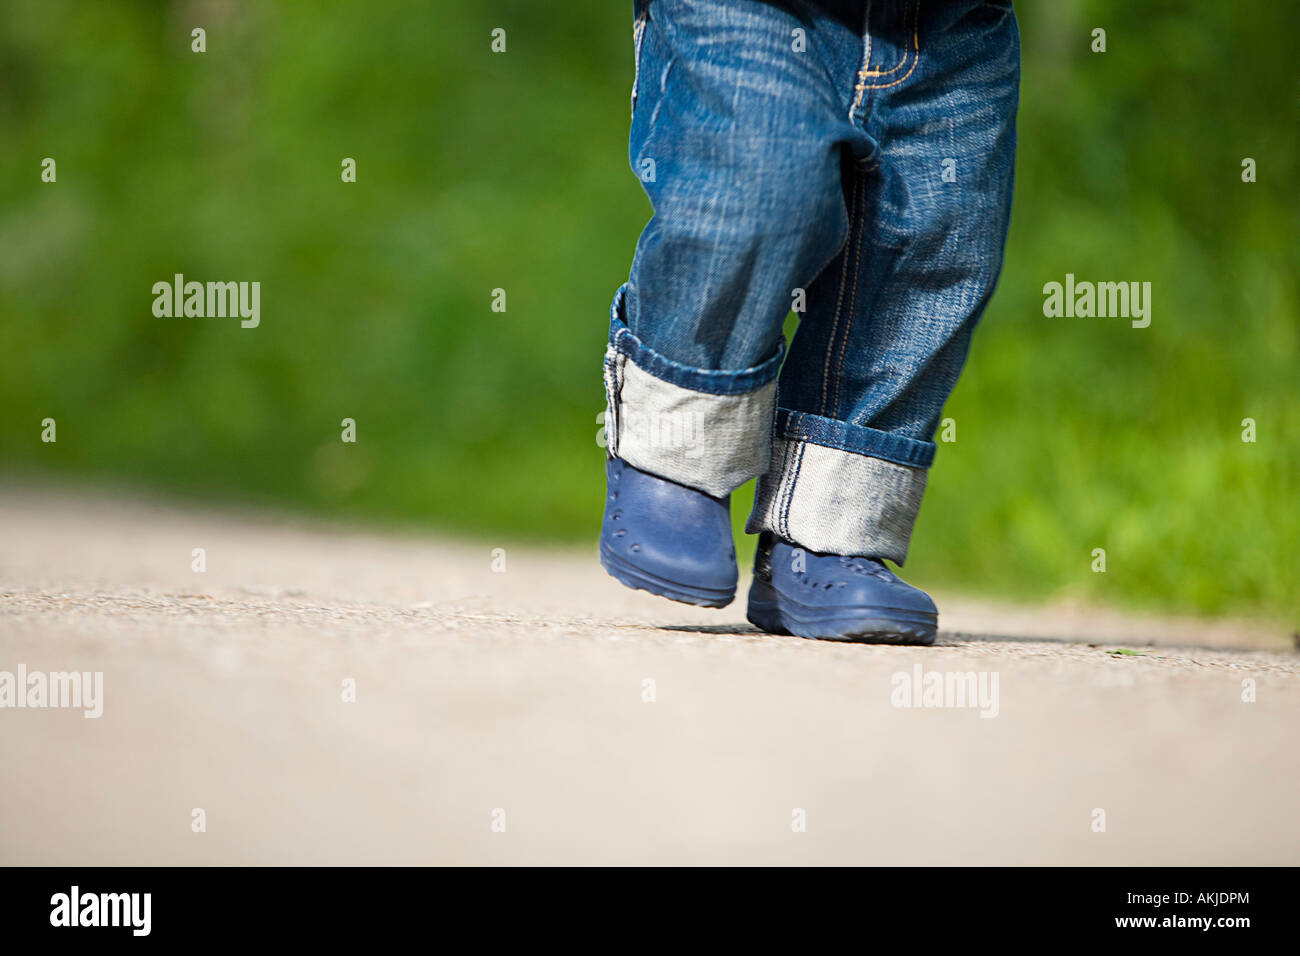 A child walking - Stock Image